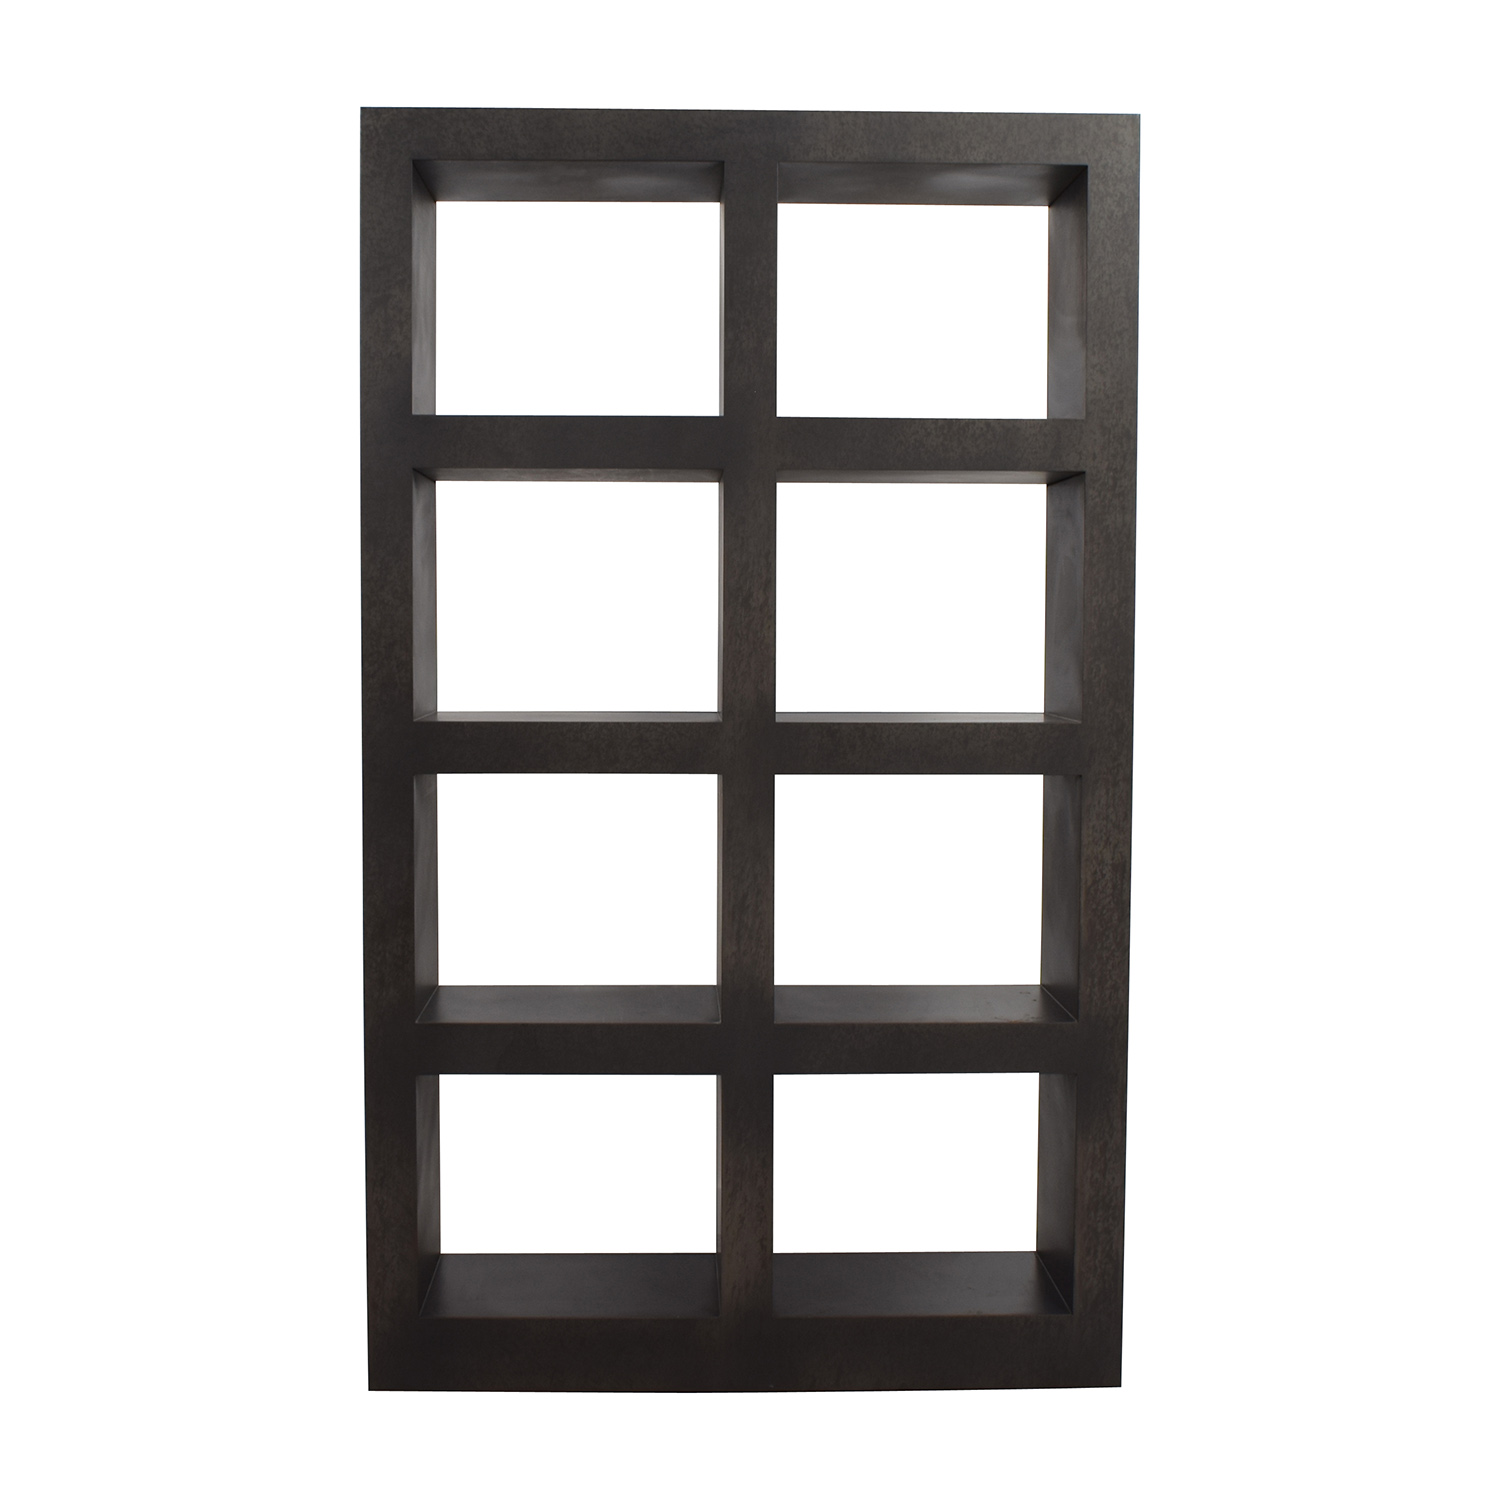 Crate & Barrel Crate & Barrel Shadow Box Tower on sale